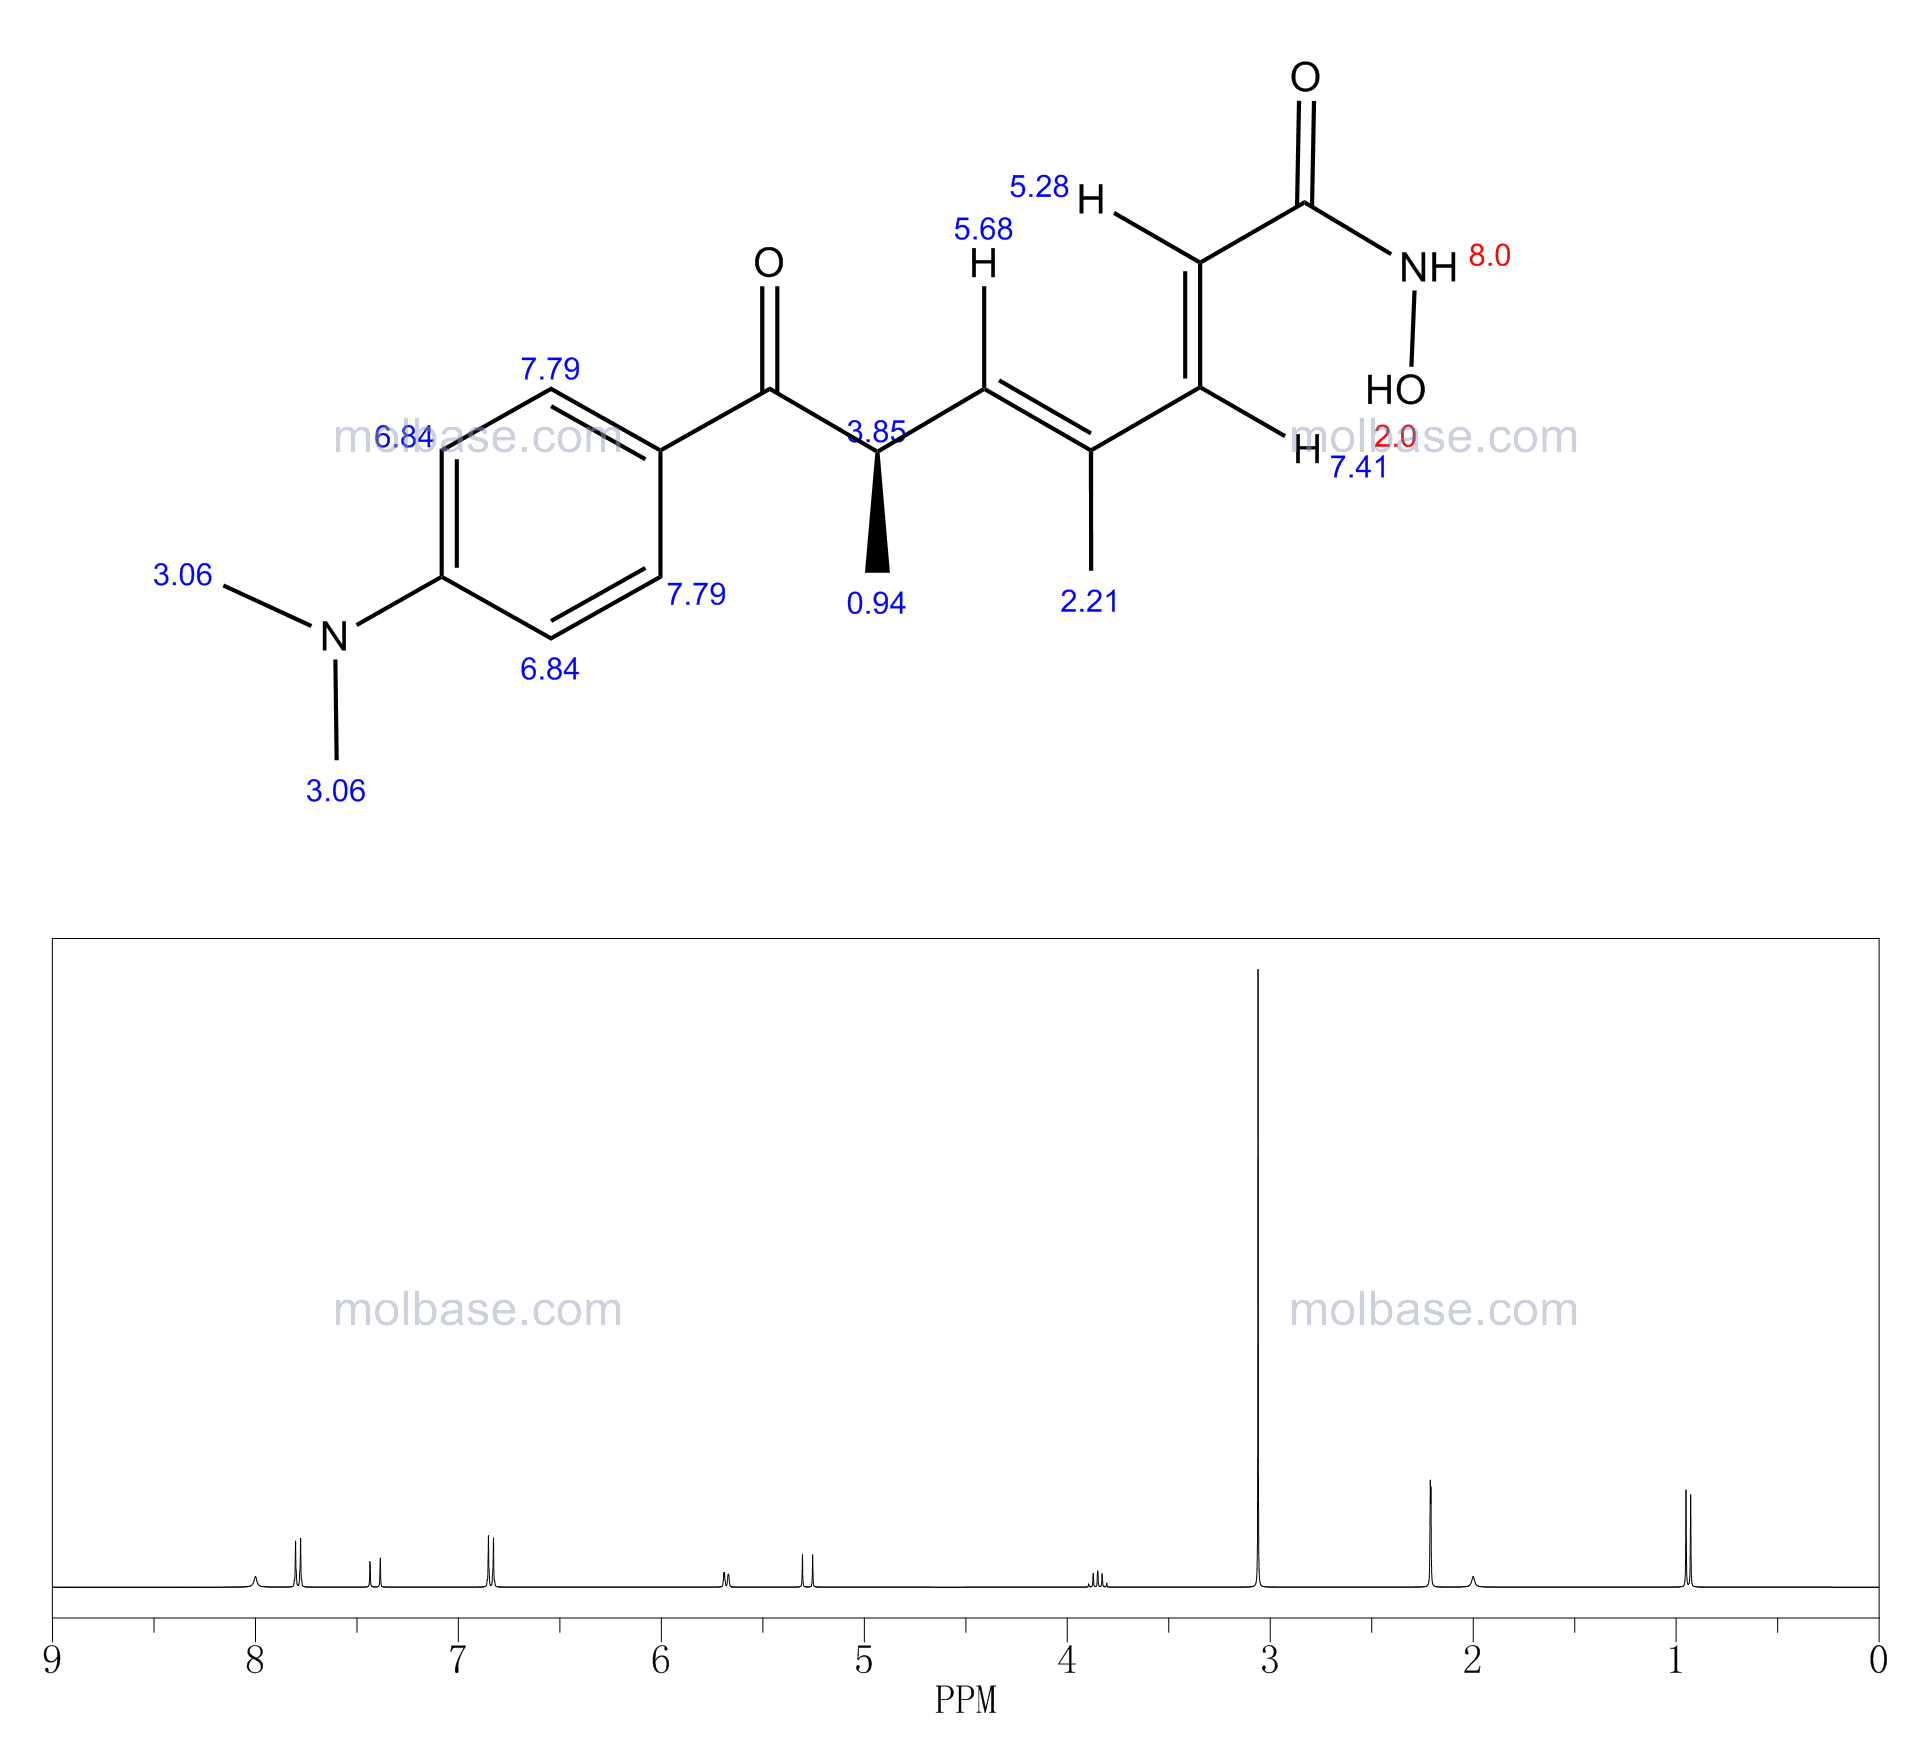 trichostatin A NMR spectra analysis, Chemical CAS NO. 58880-19-6 NMR spectral analysis, trichostatin A C-NMR spectrum